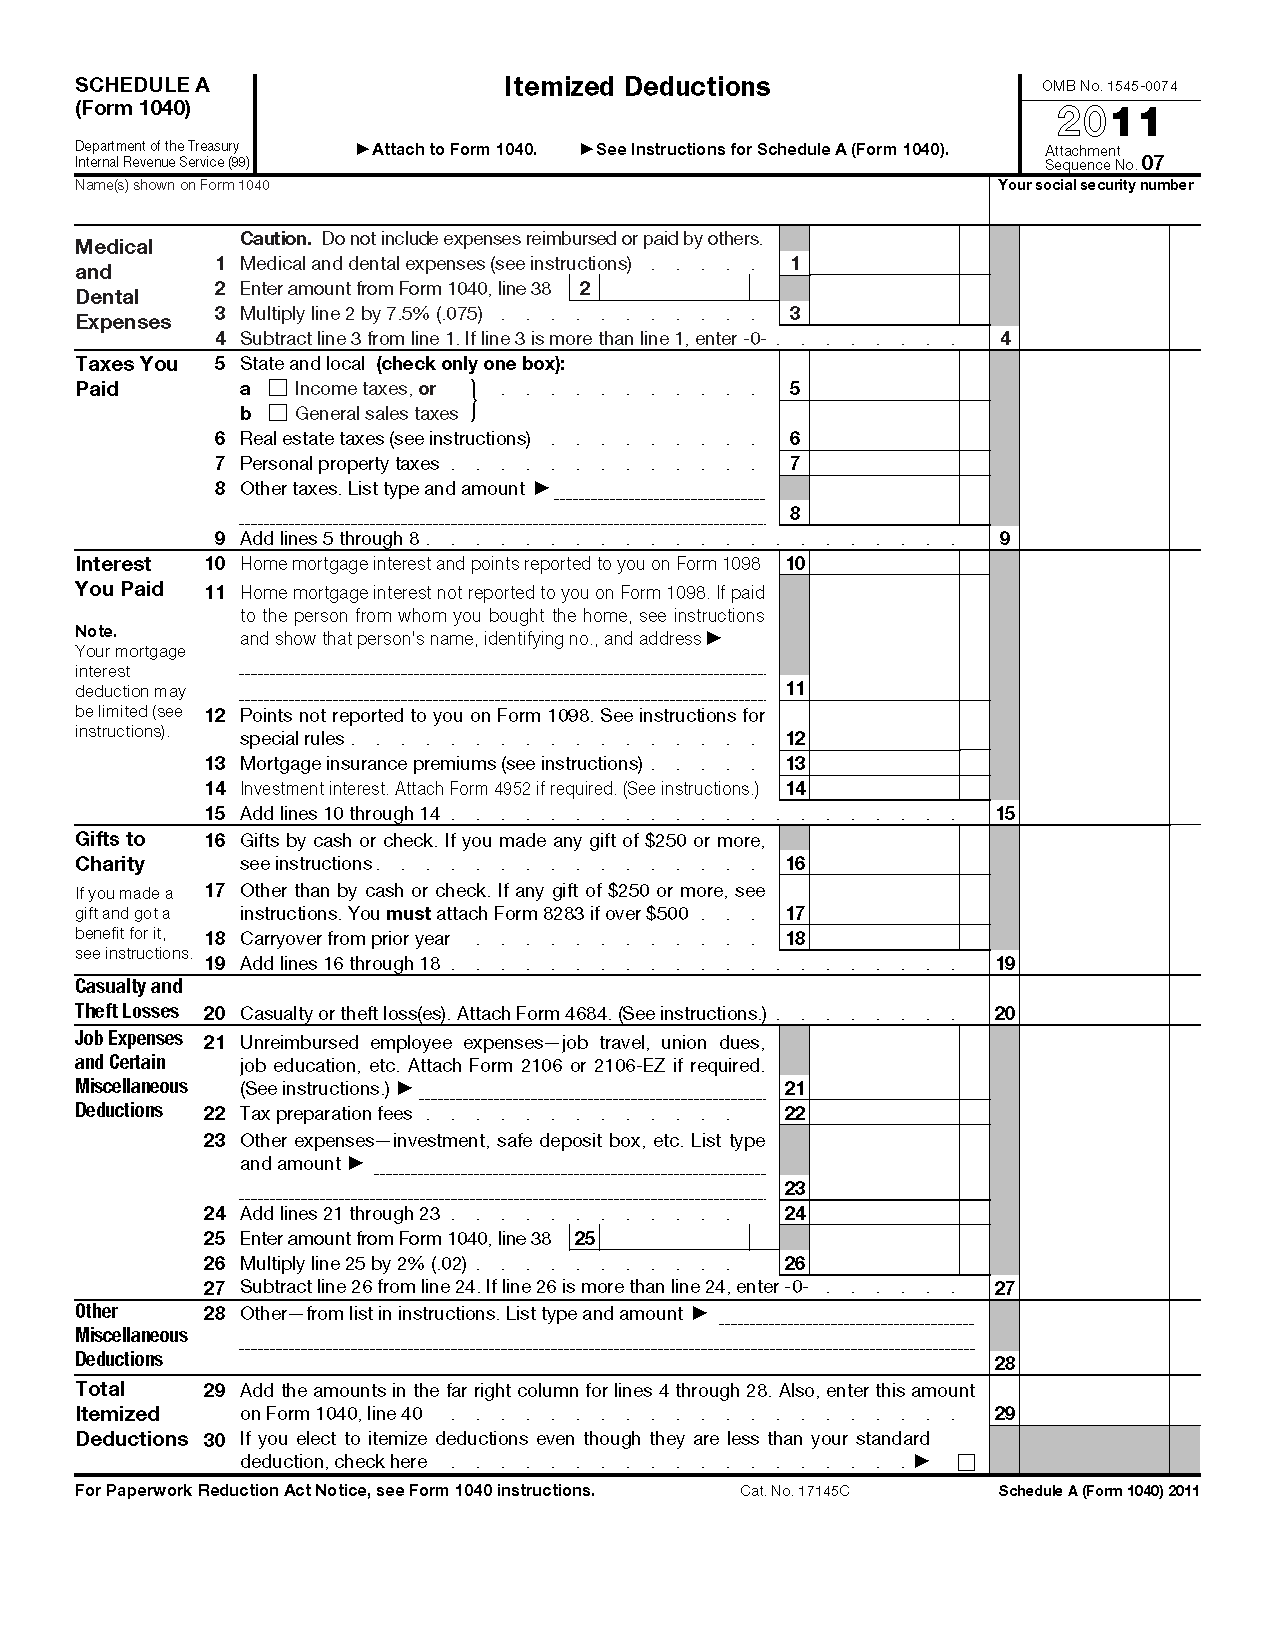 Edward Jones Revenue Internal Revenue Service Tax Tables